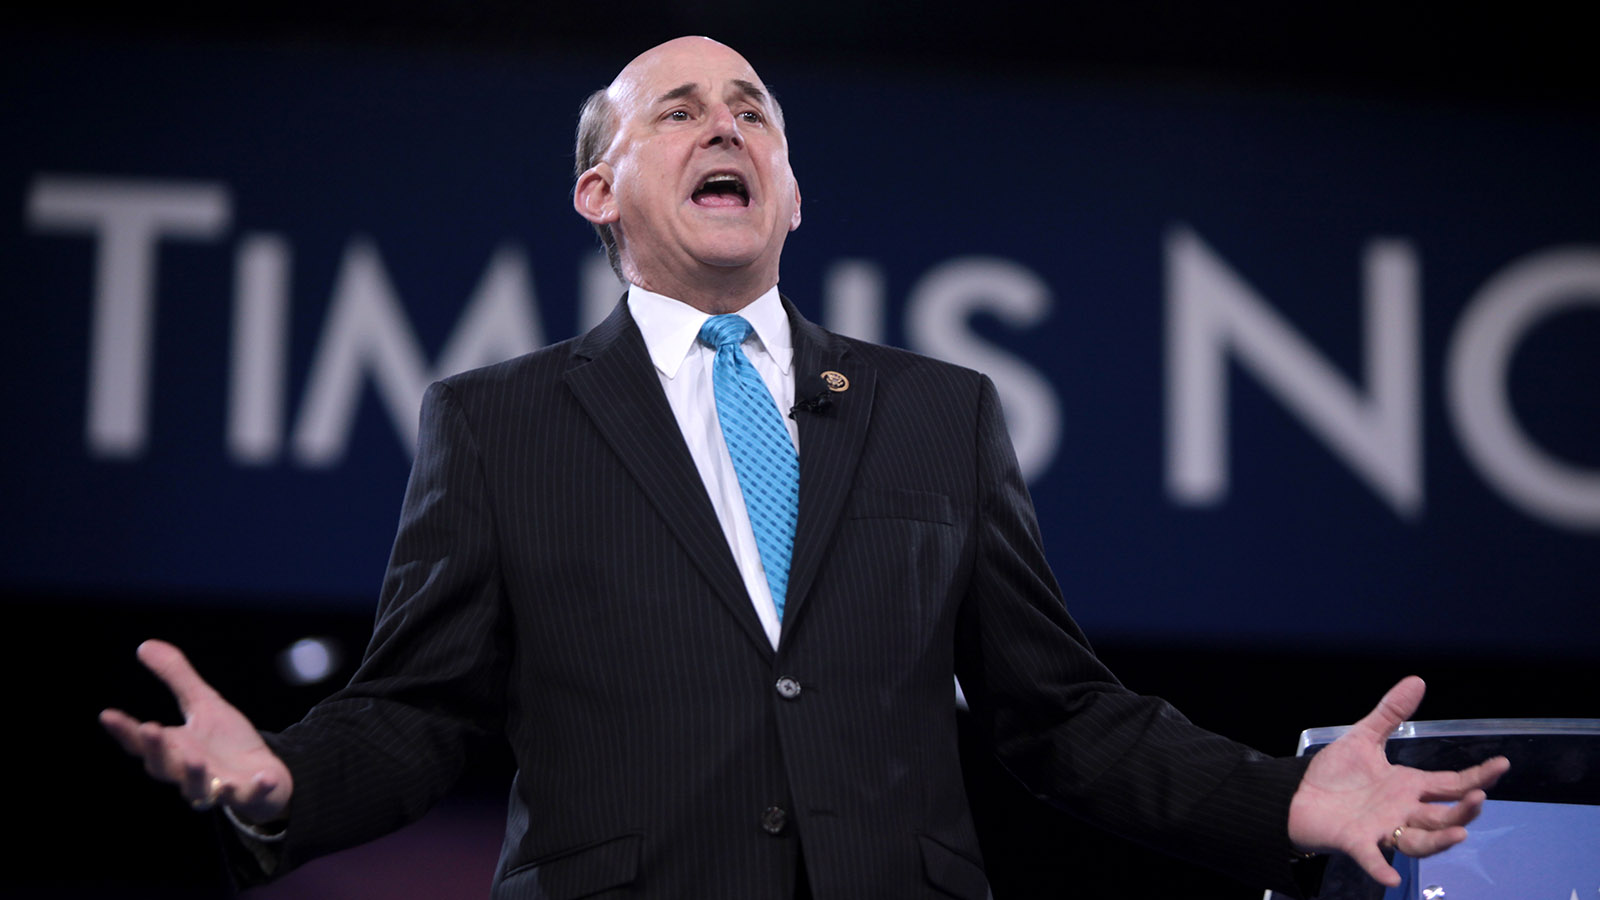 Louie Gohmert speaking at the 2016 Conservative Political Action Conference.